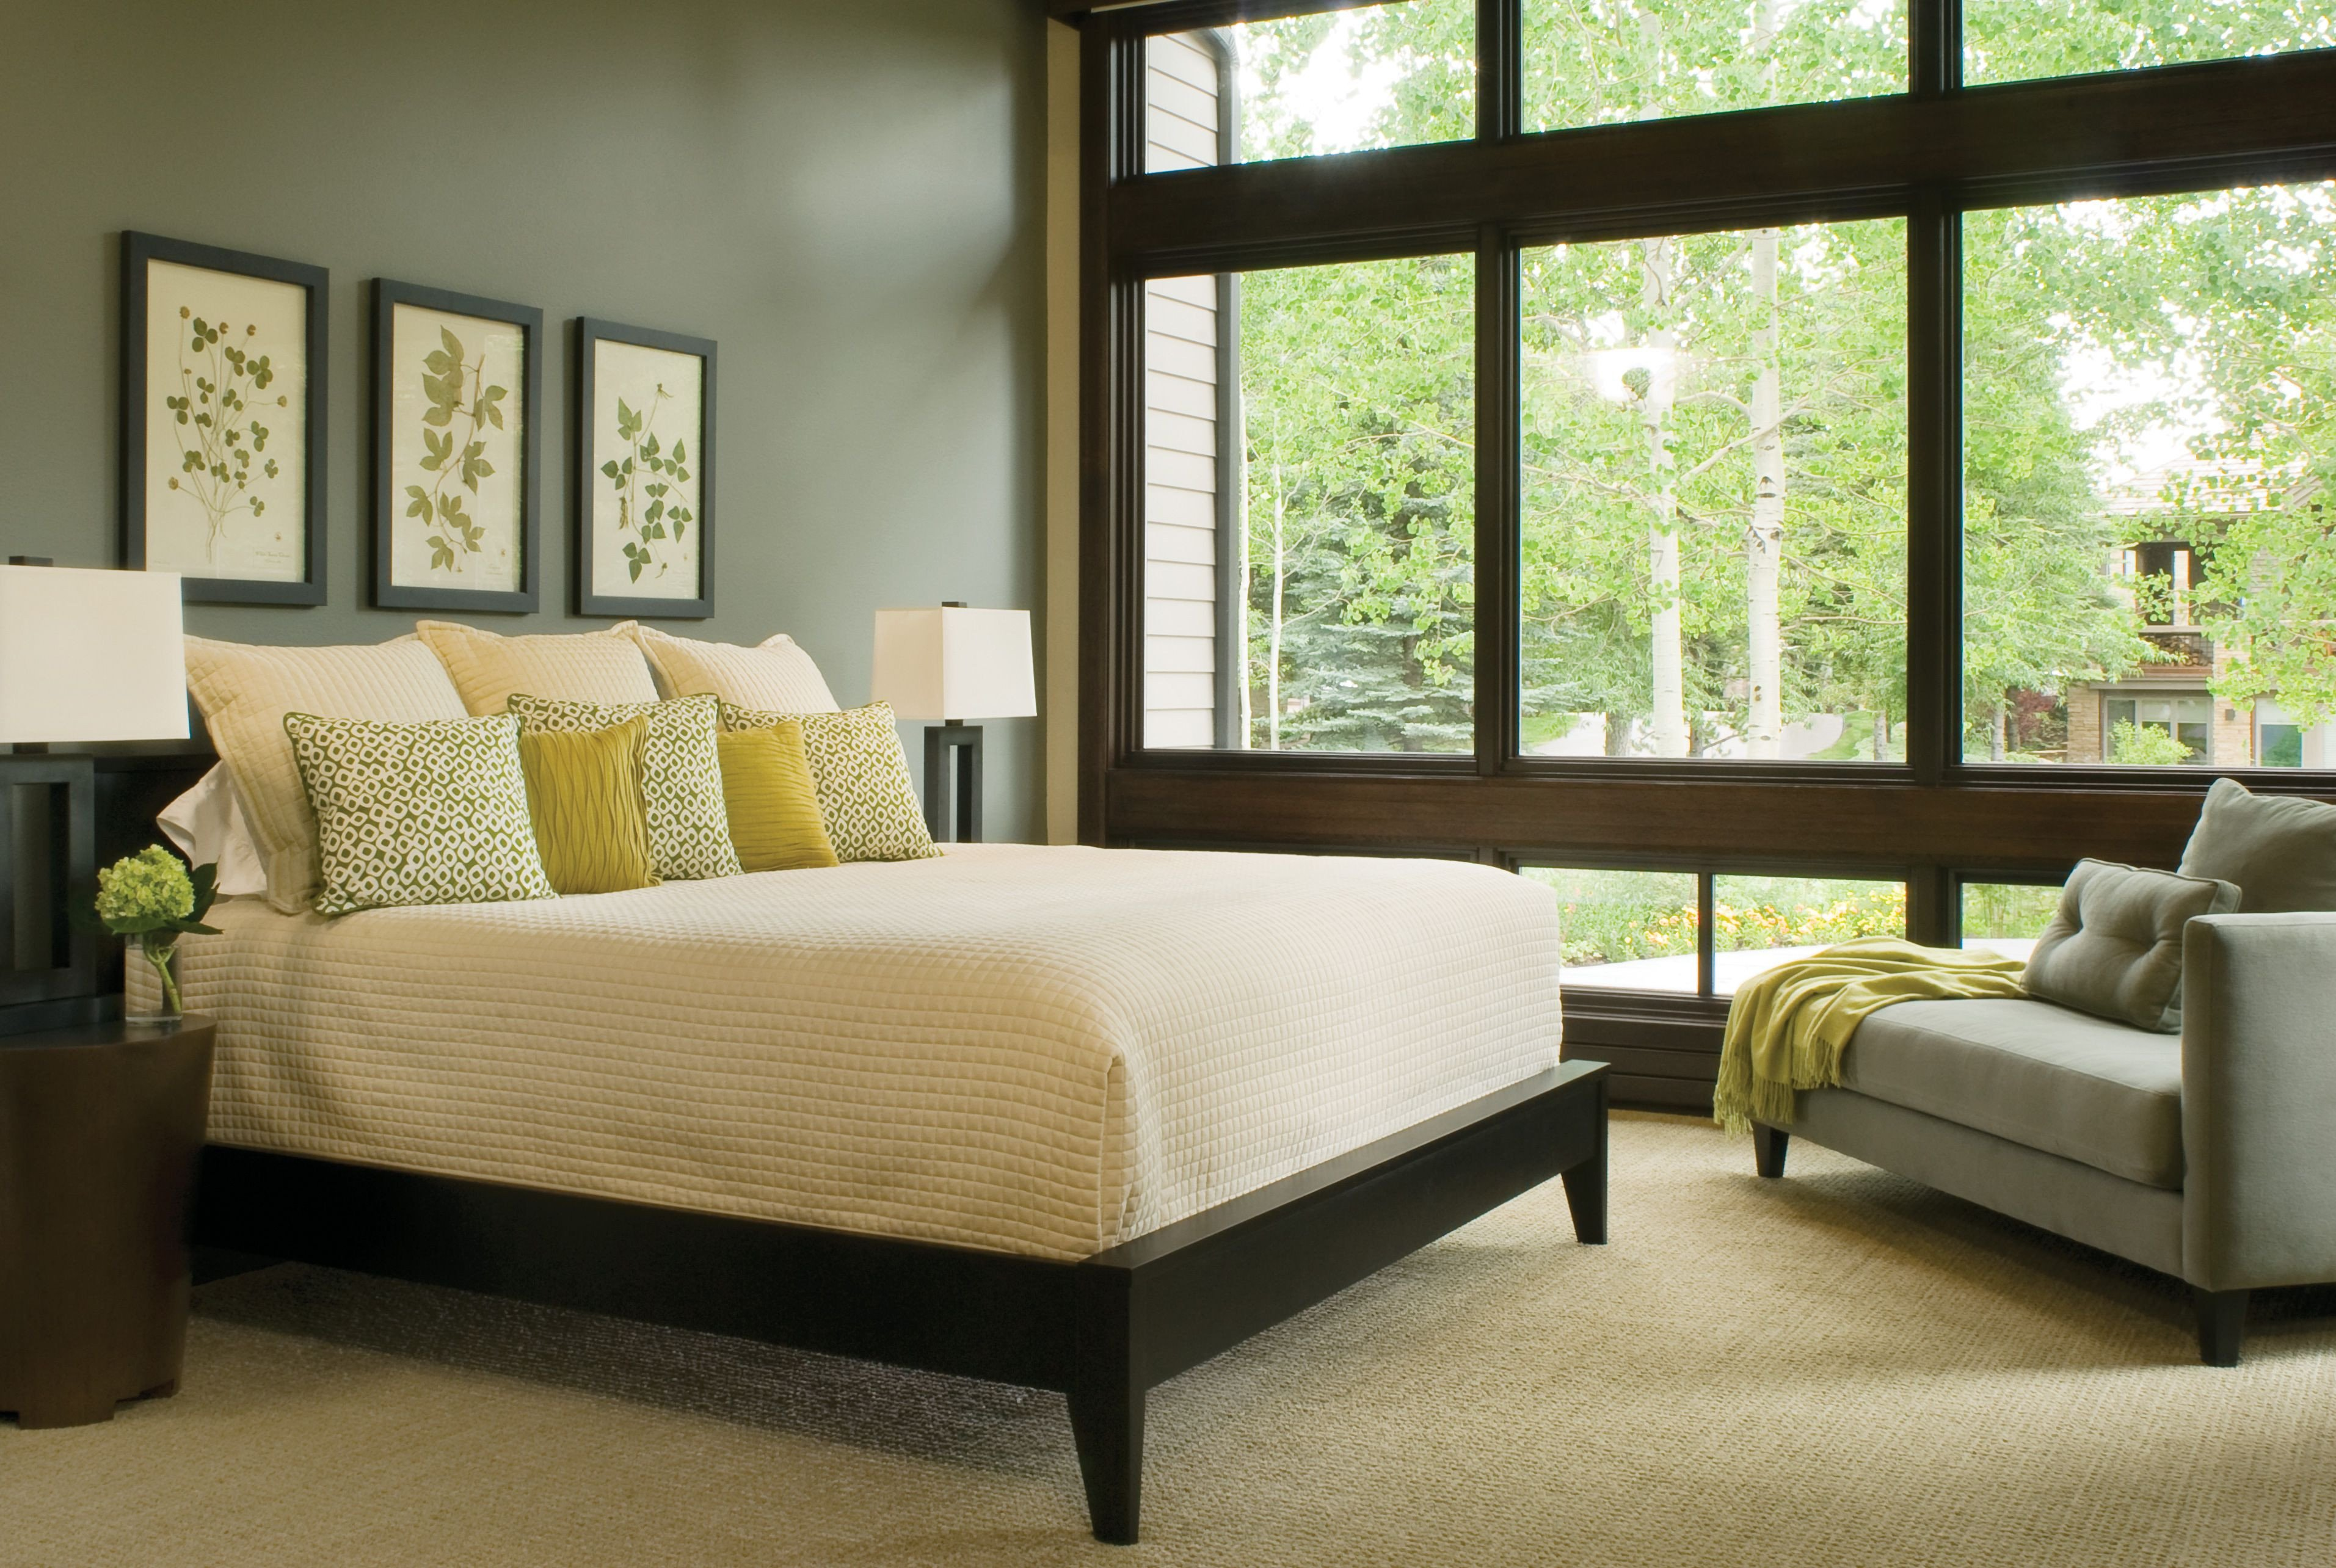 Gray and Brown Bedroom Best Of Pleasant Bedroom Nuance In Neutral Paint Color Idea with